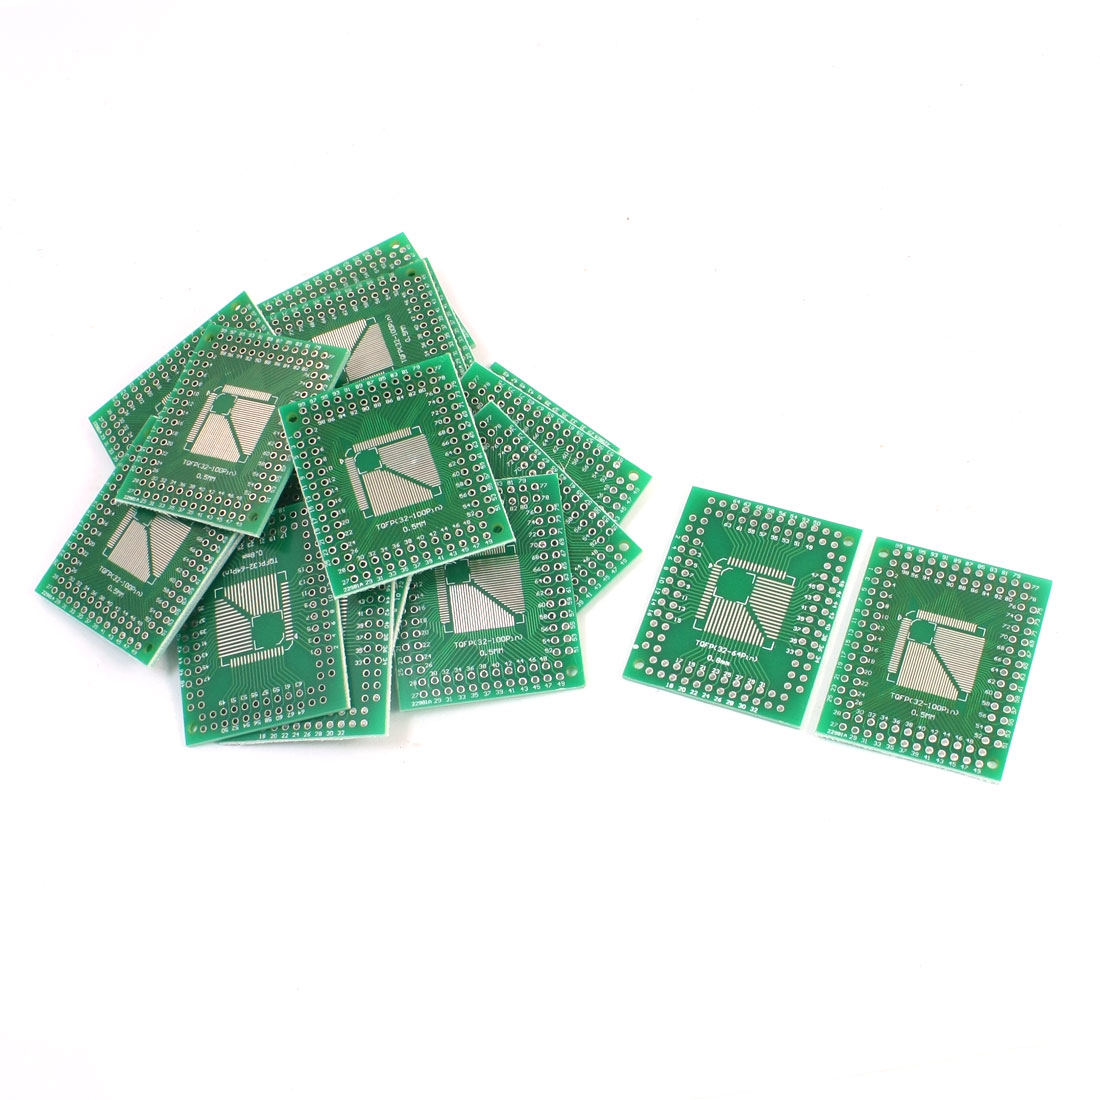 20Pcs 0.5mm 0.8mm TQFP(32-100) to 2.54mm DIP SMD Pinboard IC PCB Adapter Socket